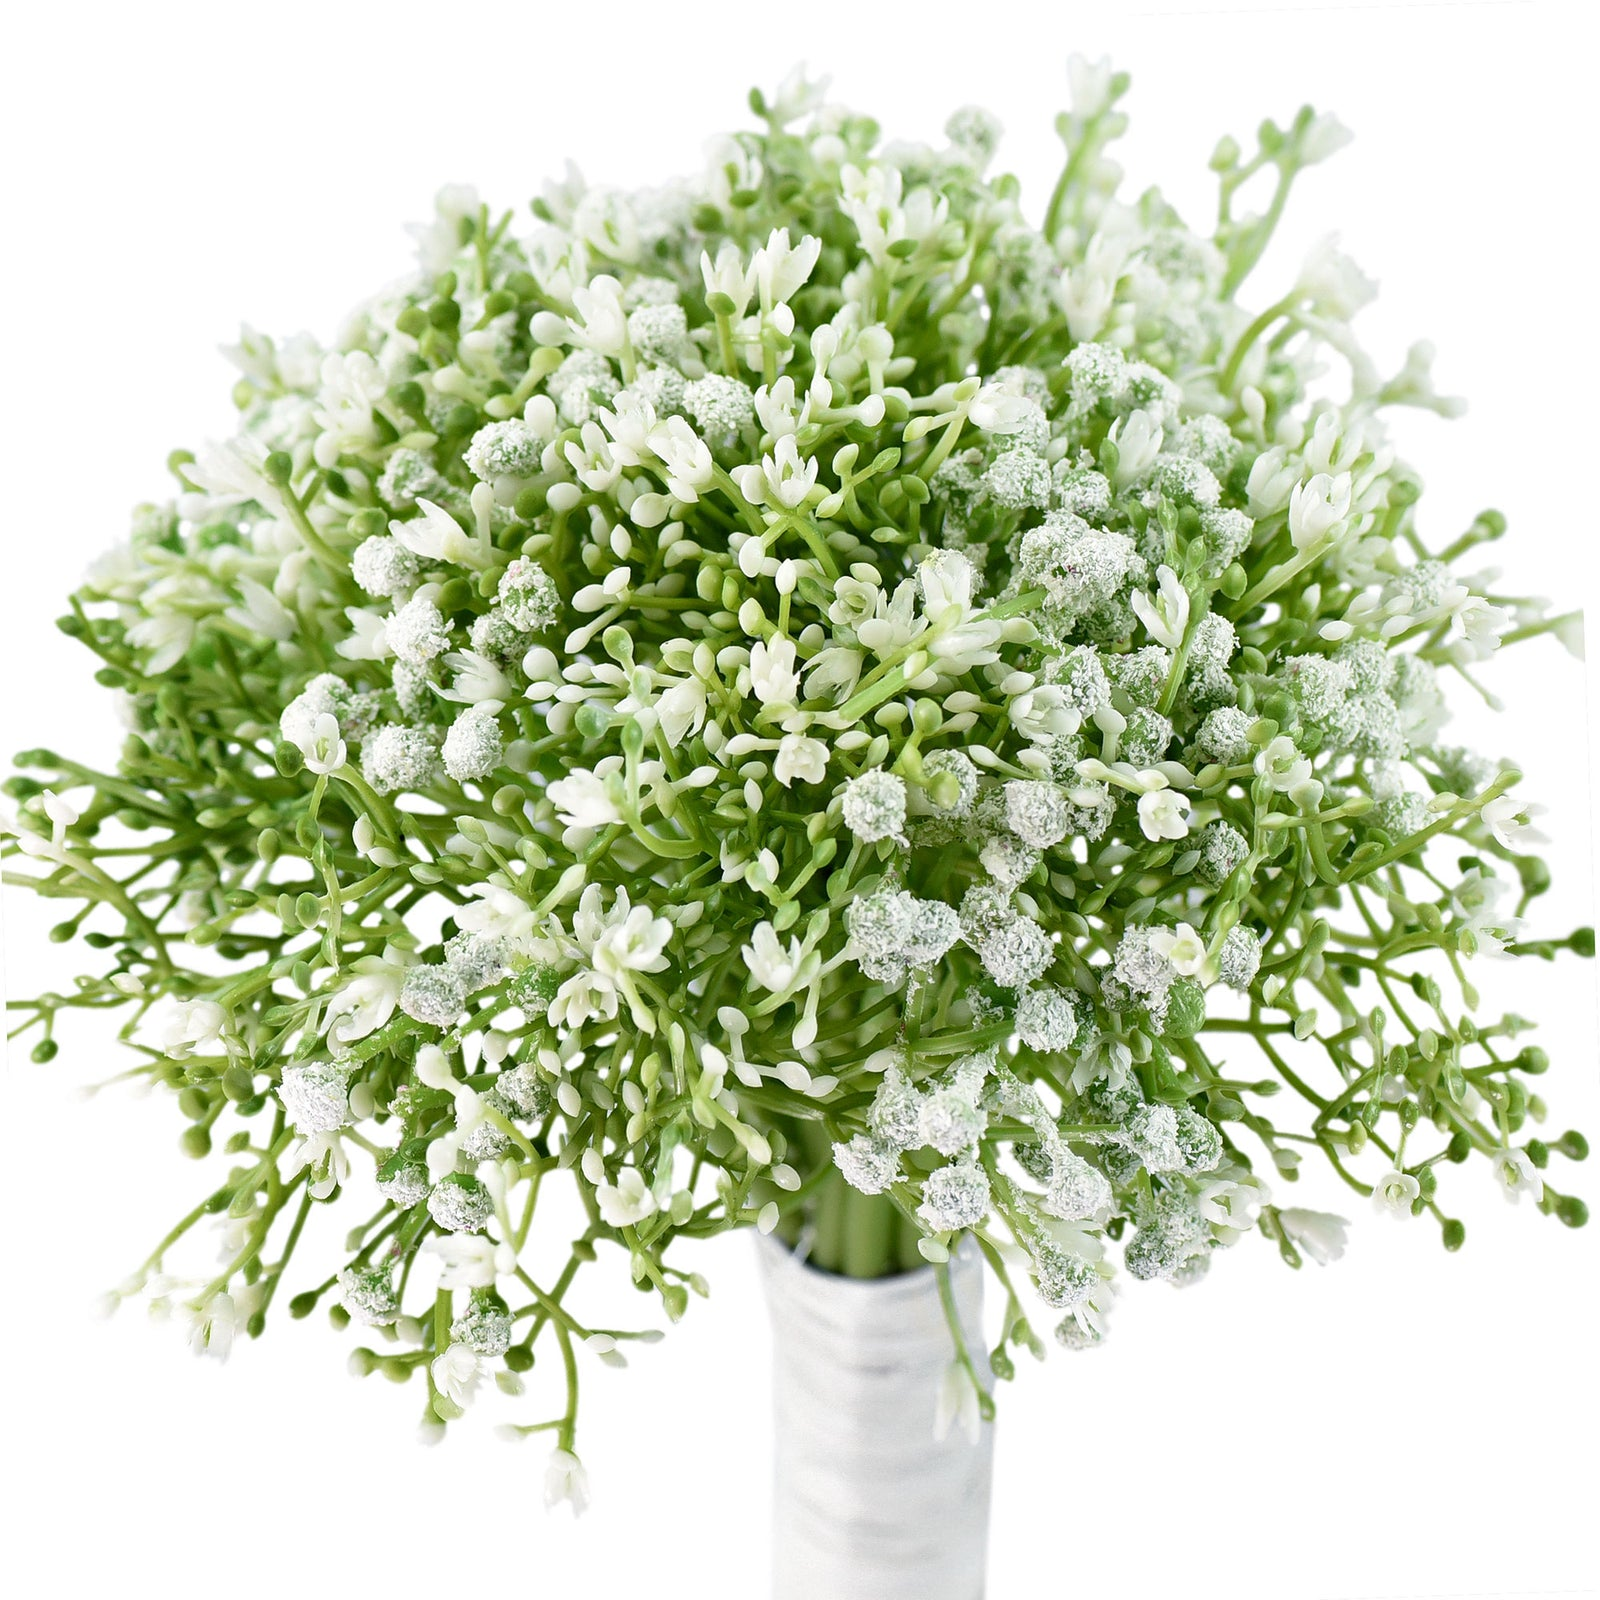 Baby's Breath Artificial Flowers Bouquet 1 Bundle (15 PCS) Baby's Breath Gypsophila 2 for Floral Arrangement, Wedding Flower Bouquet Décor (White)